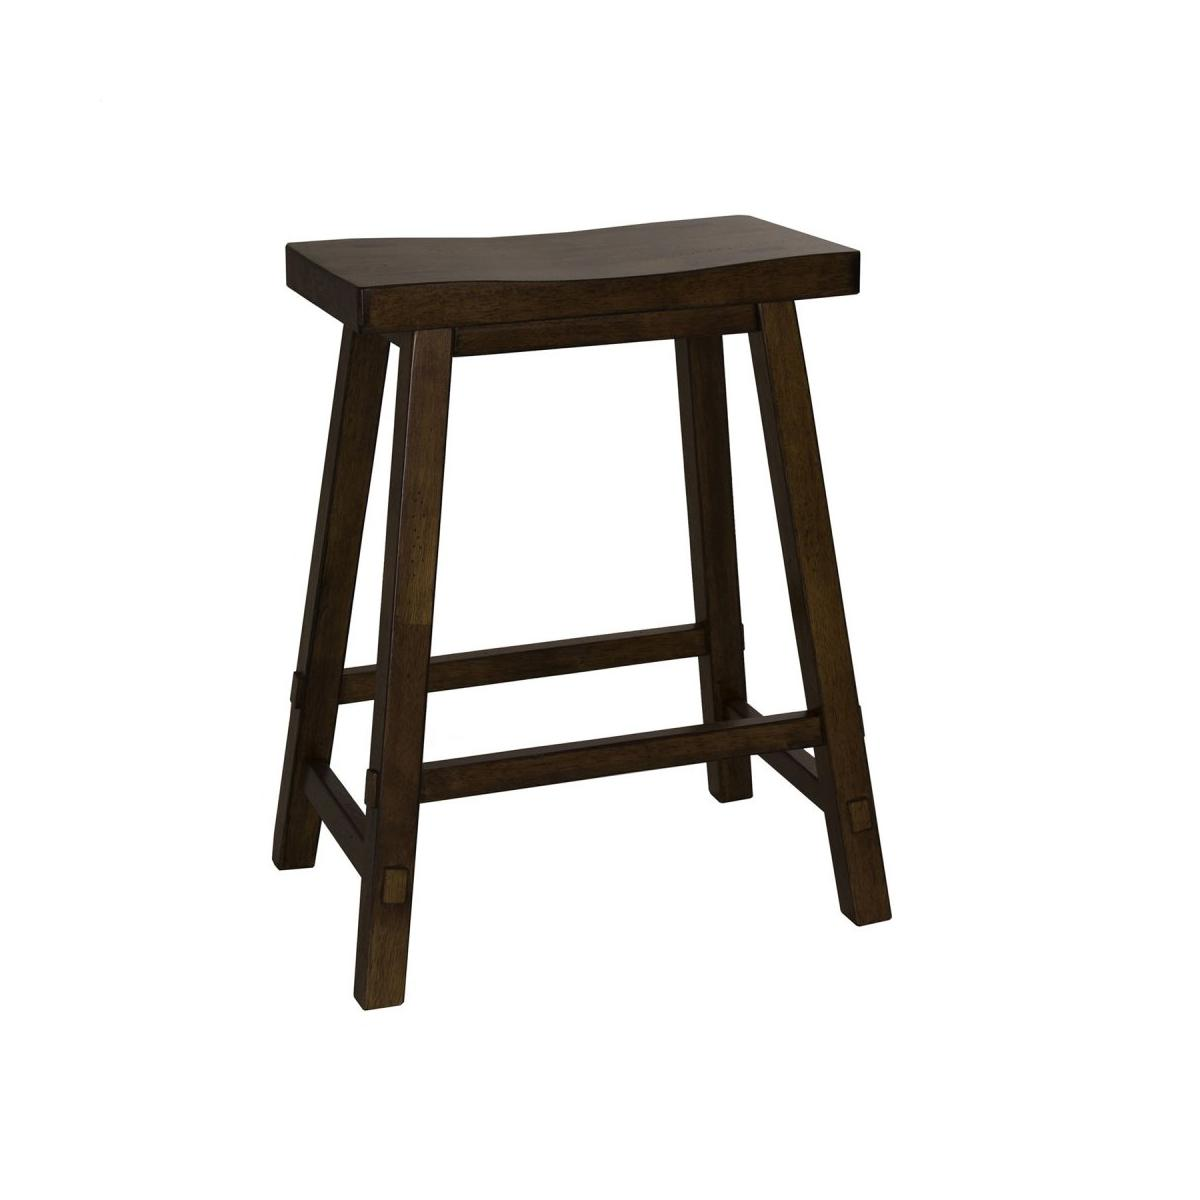 24 Inch Sawhorse Counter Stool - Tobacco (RTA)